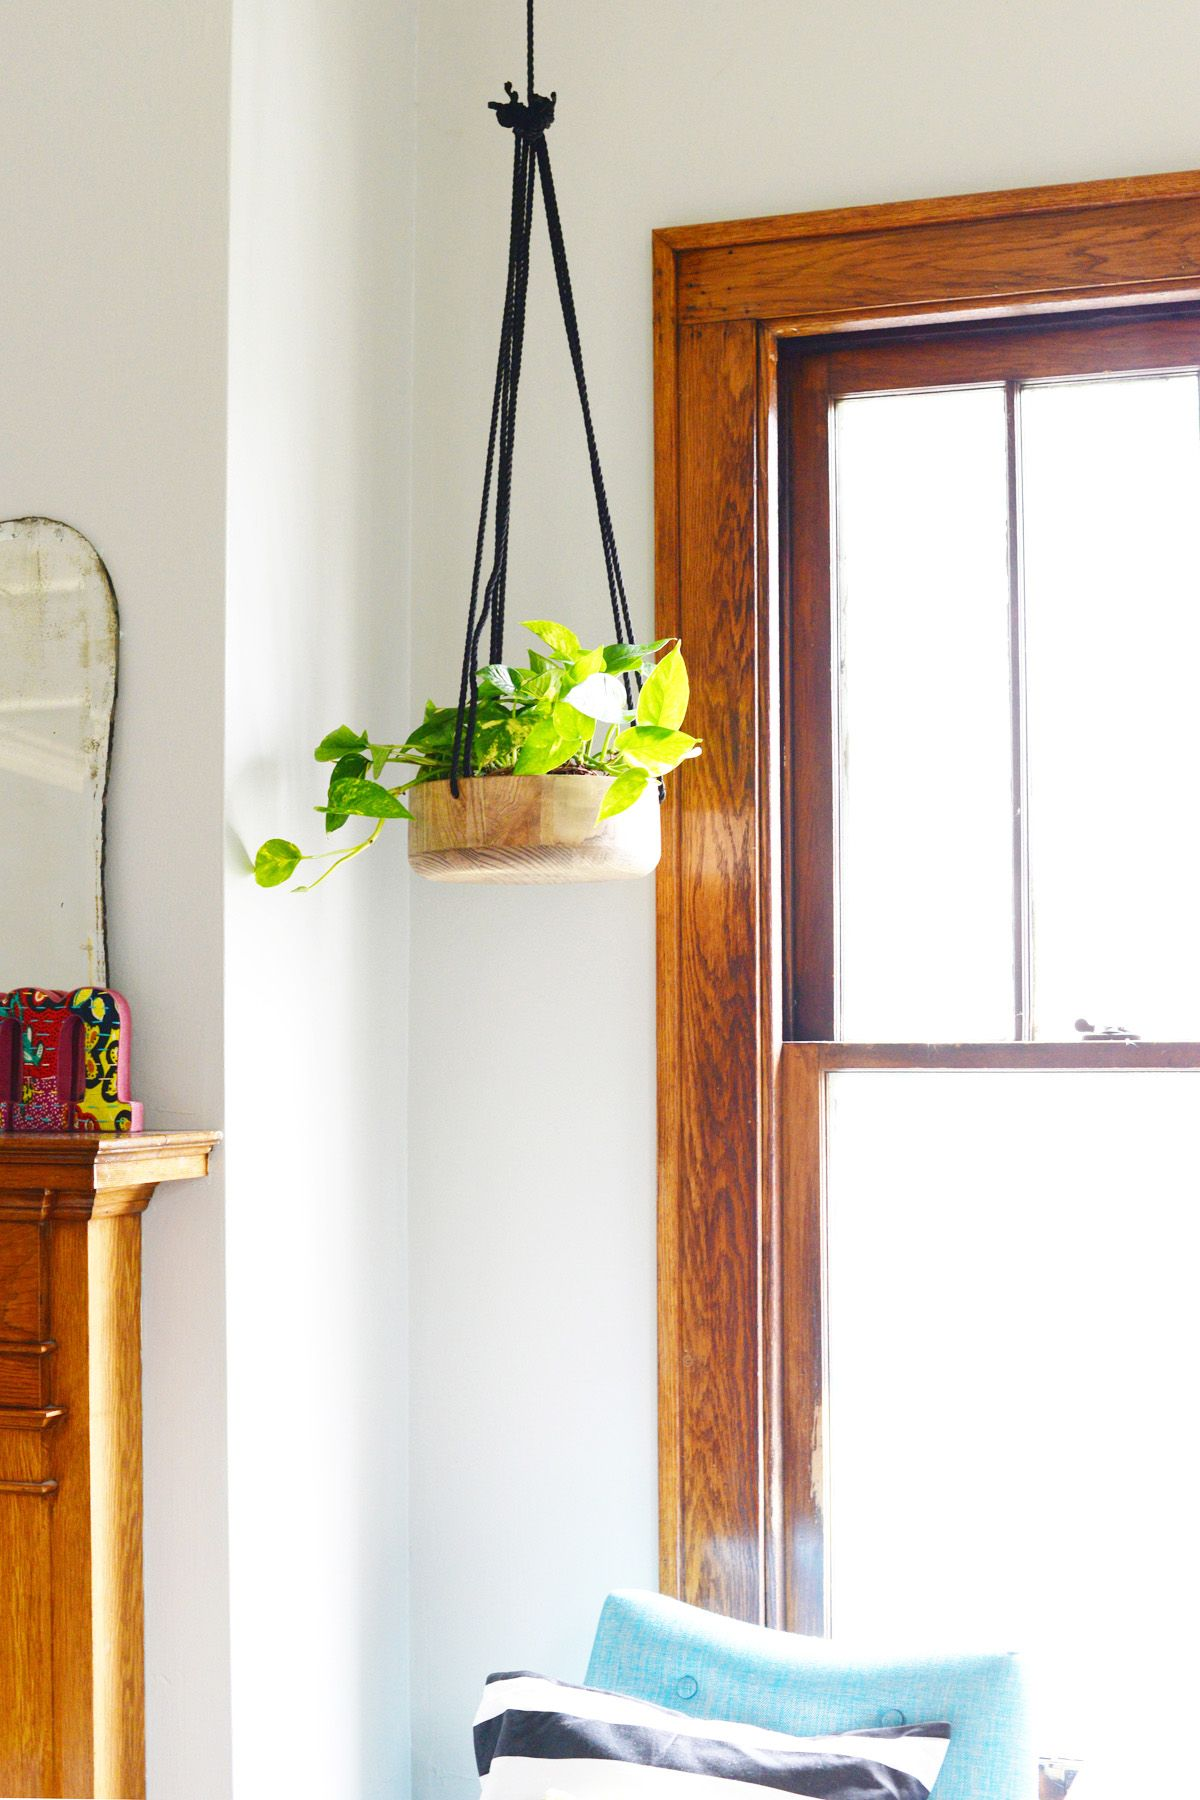 DIY Wooden Hanging Planter - rope